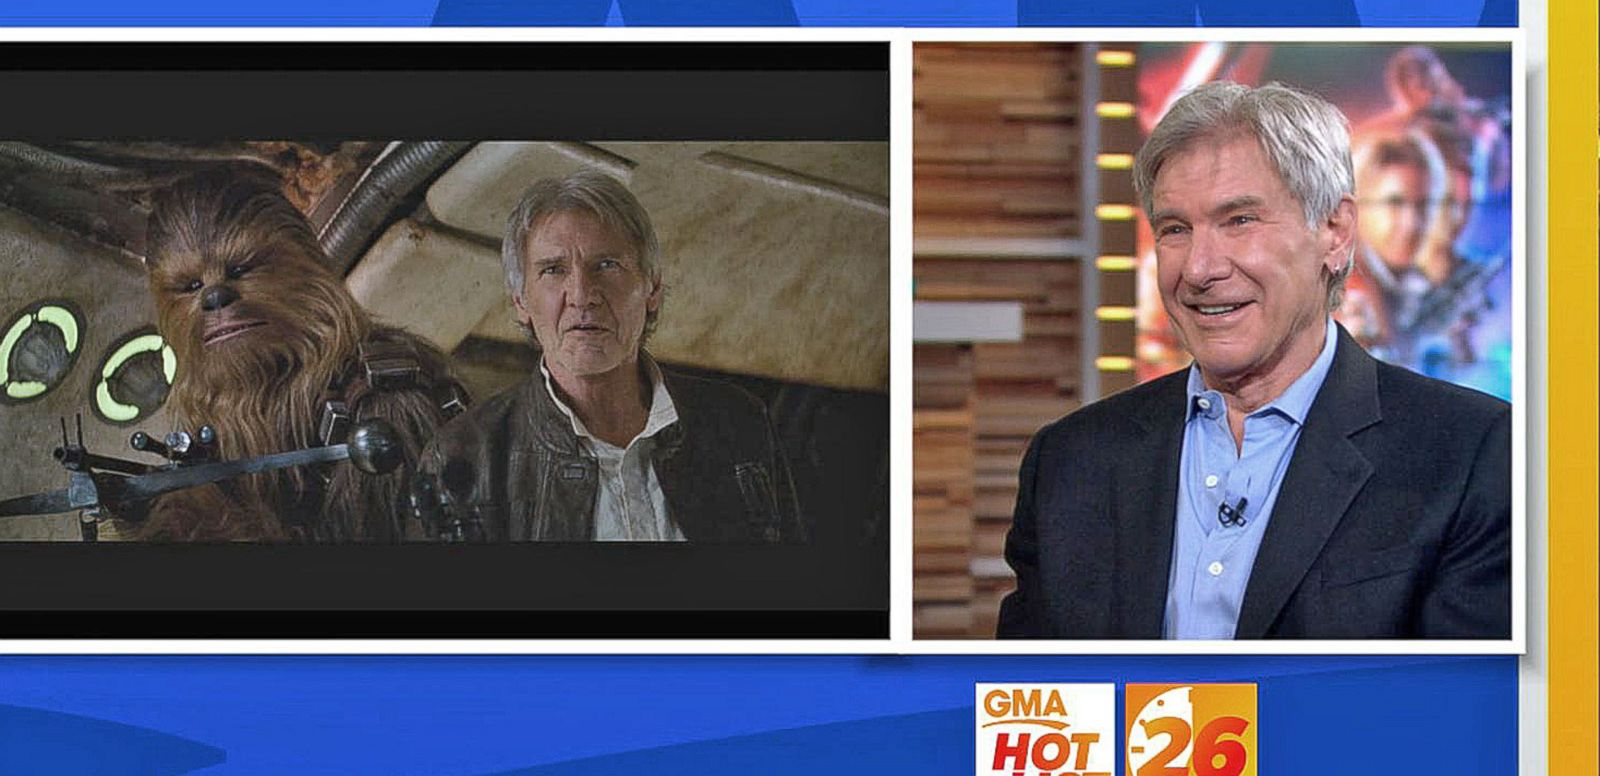 VIDEO: 'GMA' Hot List: Harrison Ford on Returning as Han Solo in 'Star Wars'